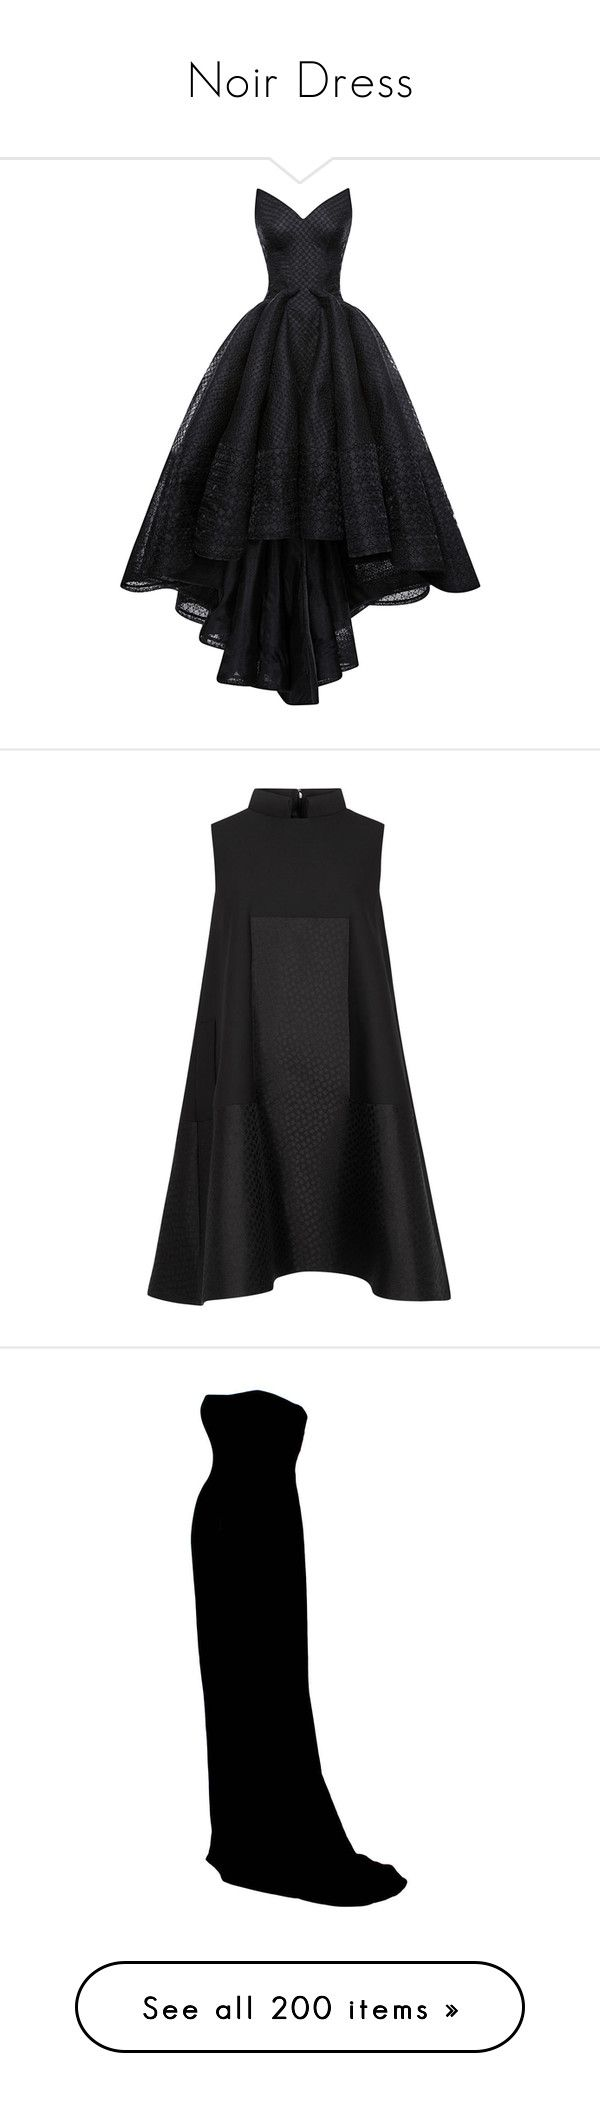 """""""Noir Dress"""" by brassbracelets ❤ liked on Polyvore featuring dresses, gowns, long dresses, vestidos, organza ball gown, bustier gown, strapless evening dresses, bustier dress, organza gown and black"""